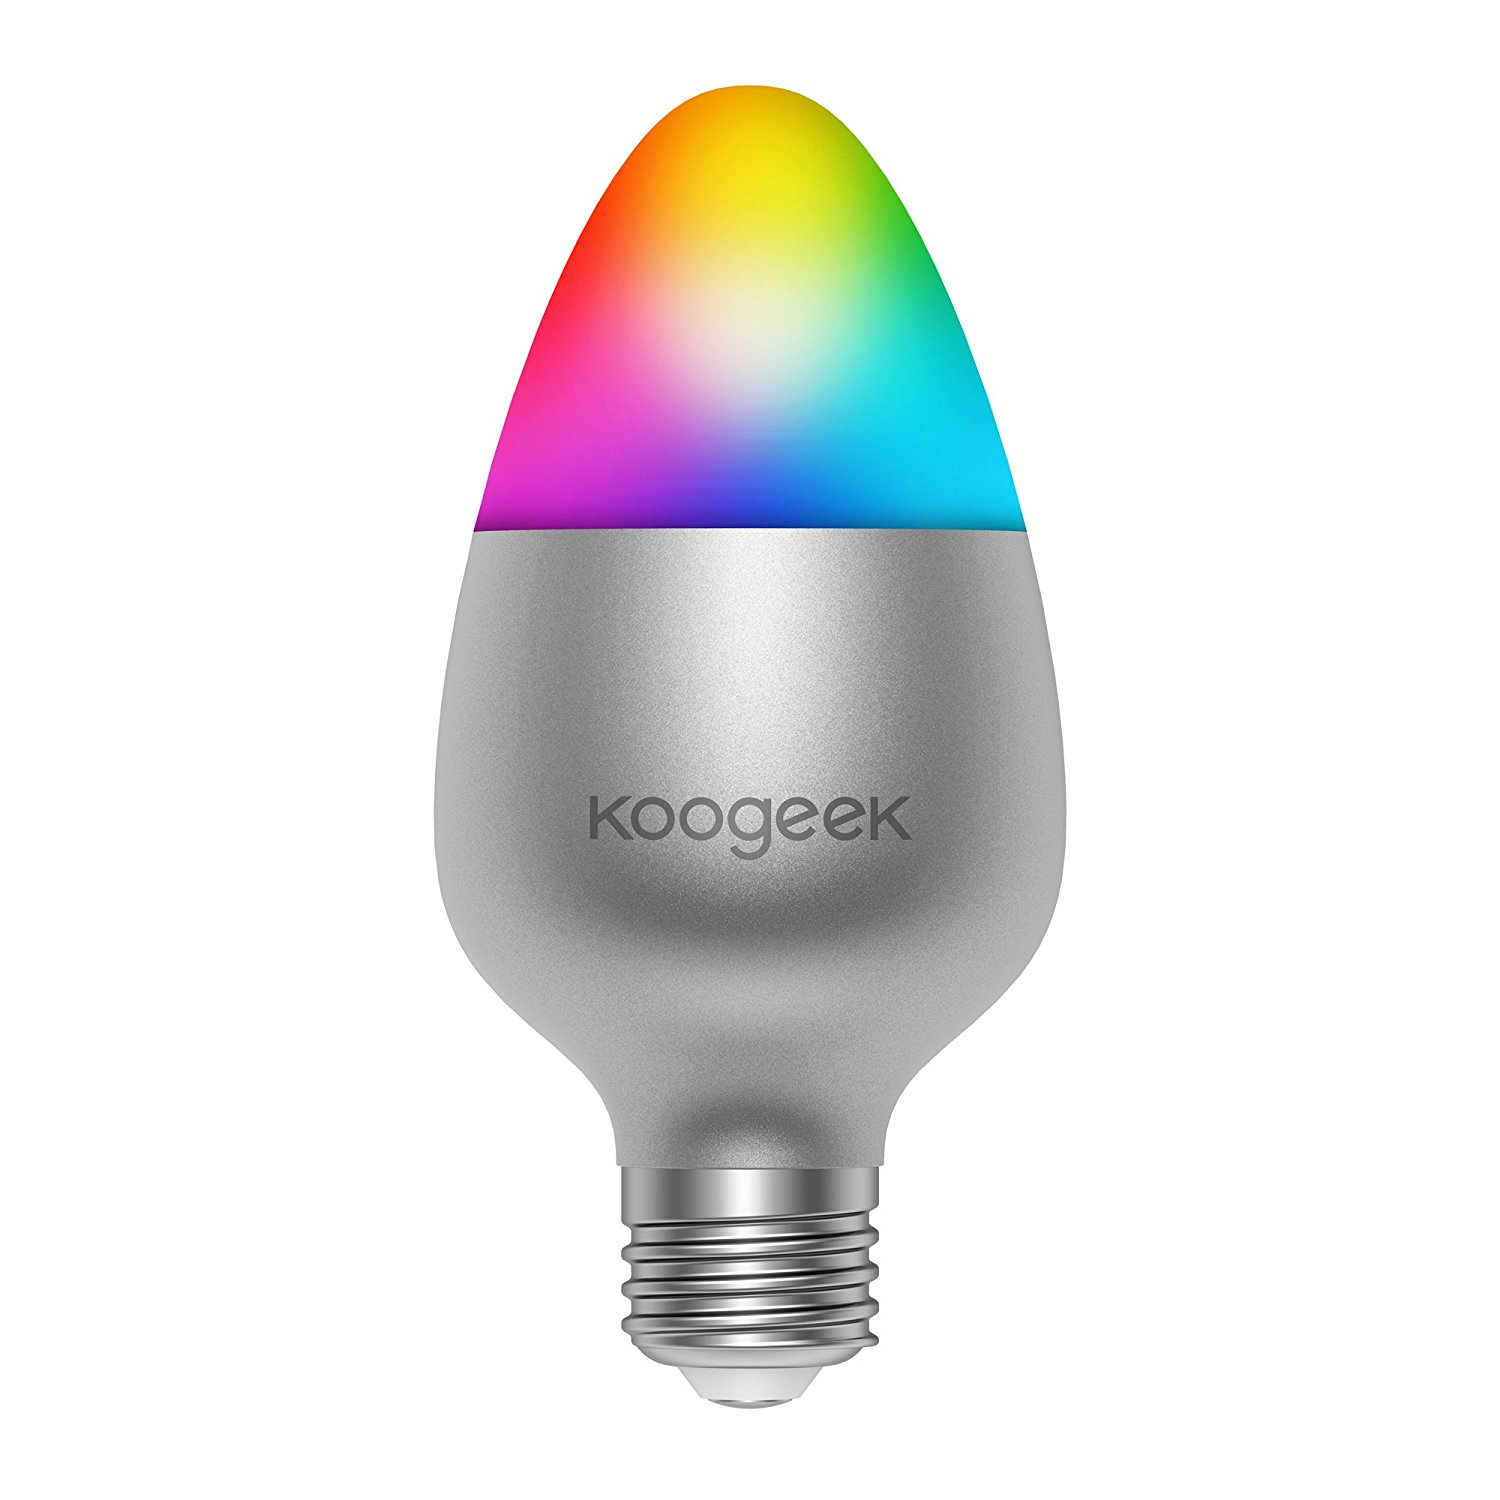 Bombilla led wifi inteligente Koogeek de colores para iPhone, iPad, Apple TV con Home Kit